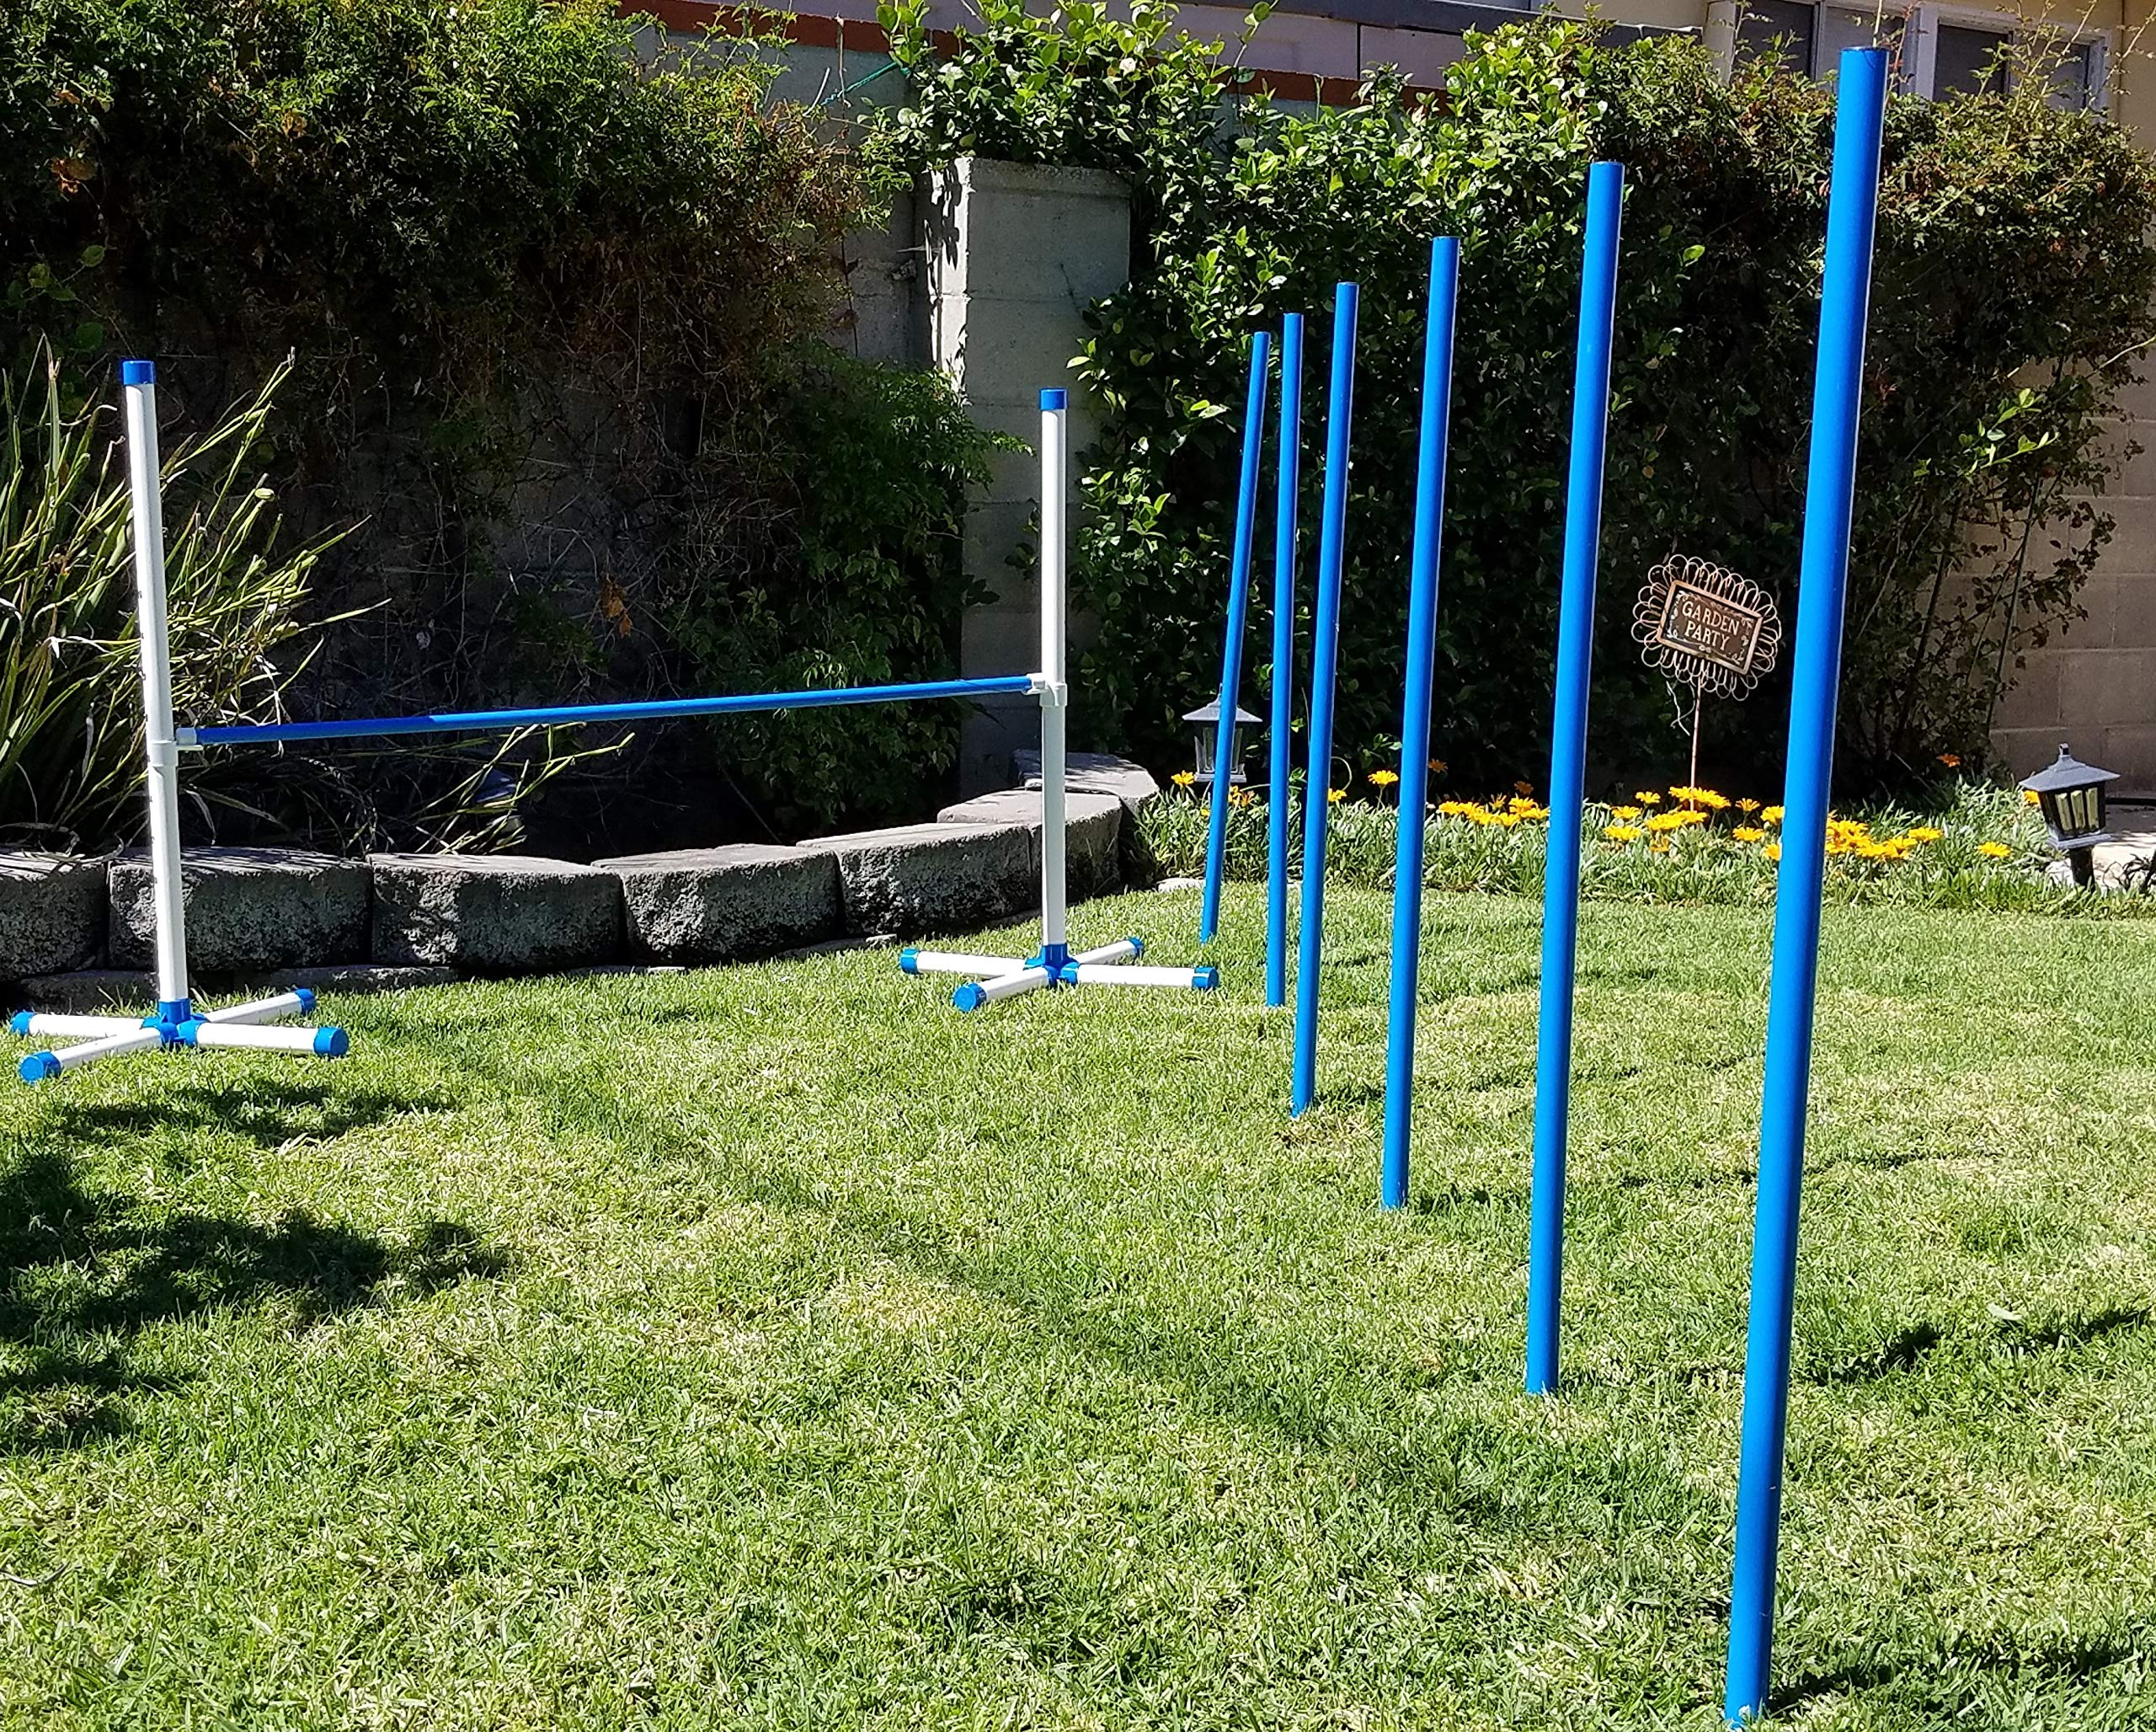 Triple A Dogs Combo 1 Dog Agility Jump/6 Dog Agility Weave Poles Buy Combo and Save